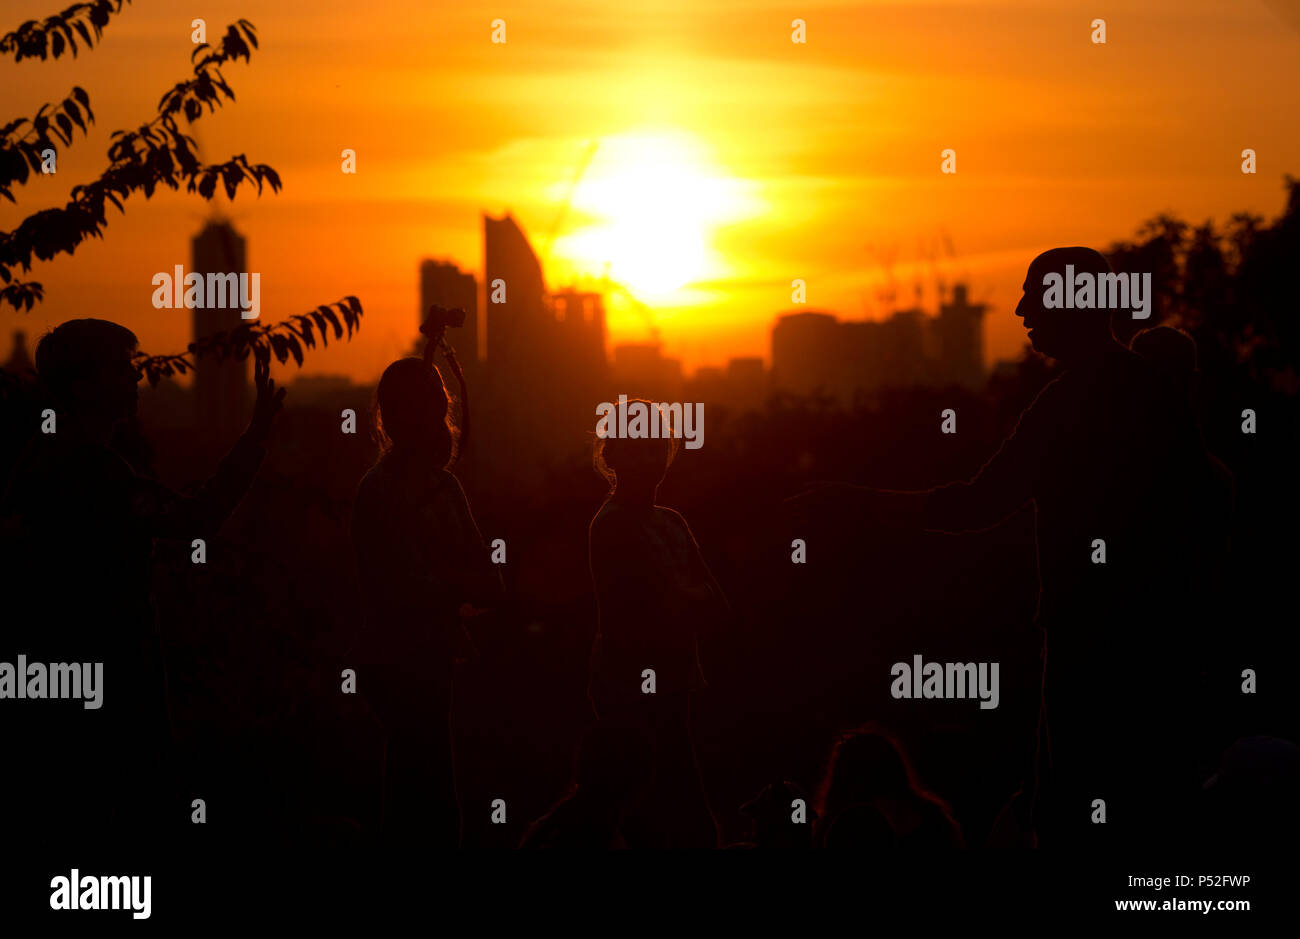 London, UK. 24th June, 2018. People look at the sun setting over the city of London from Telegraph Hill, south London, in a hot evening as the weather reached temperatures over 25C in the UK today on Sunday June 24, 2018.         Credit: Isabel Infantes/Alamy Live News Stock Photo